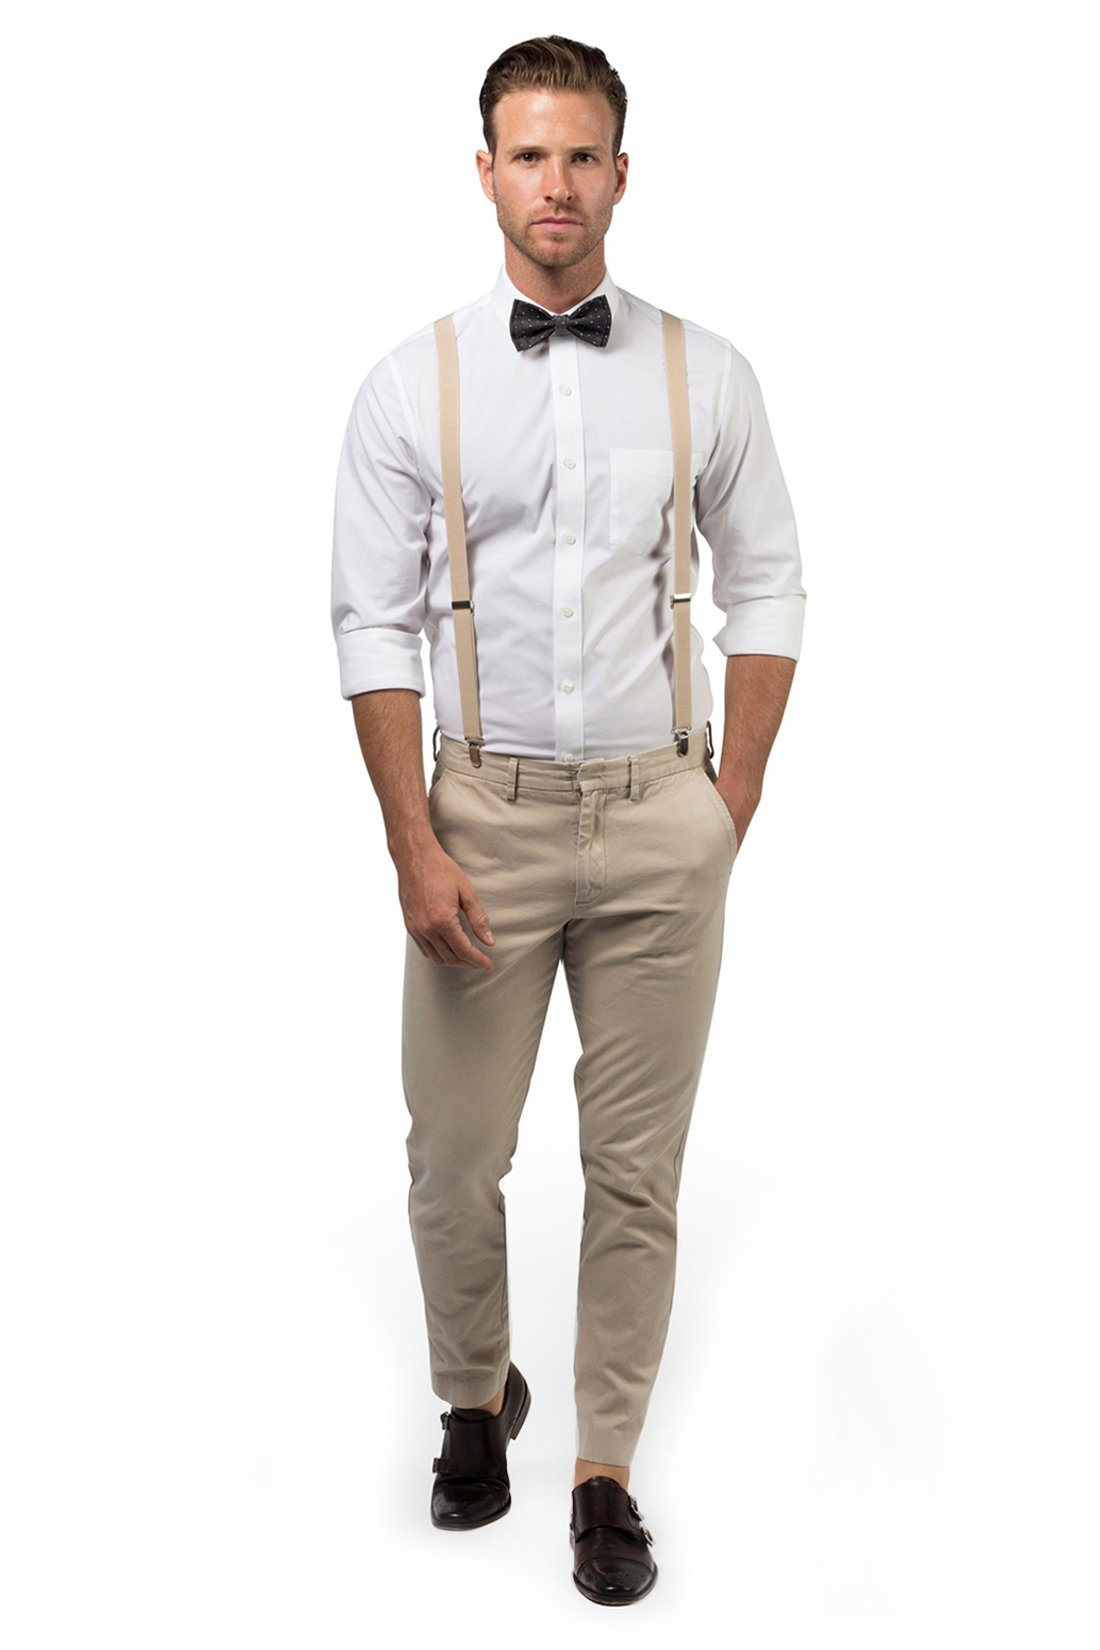 Beige Suspenders & Black Polka Dot Bow Tie